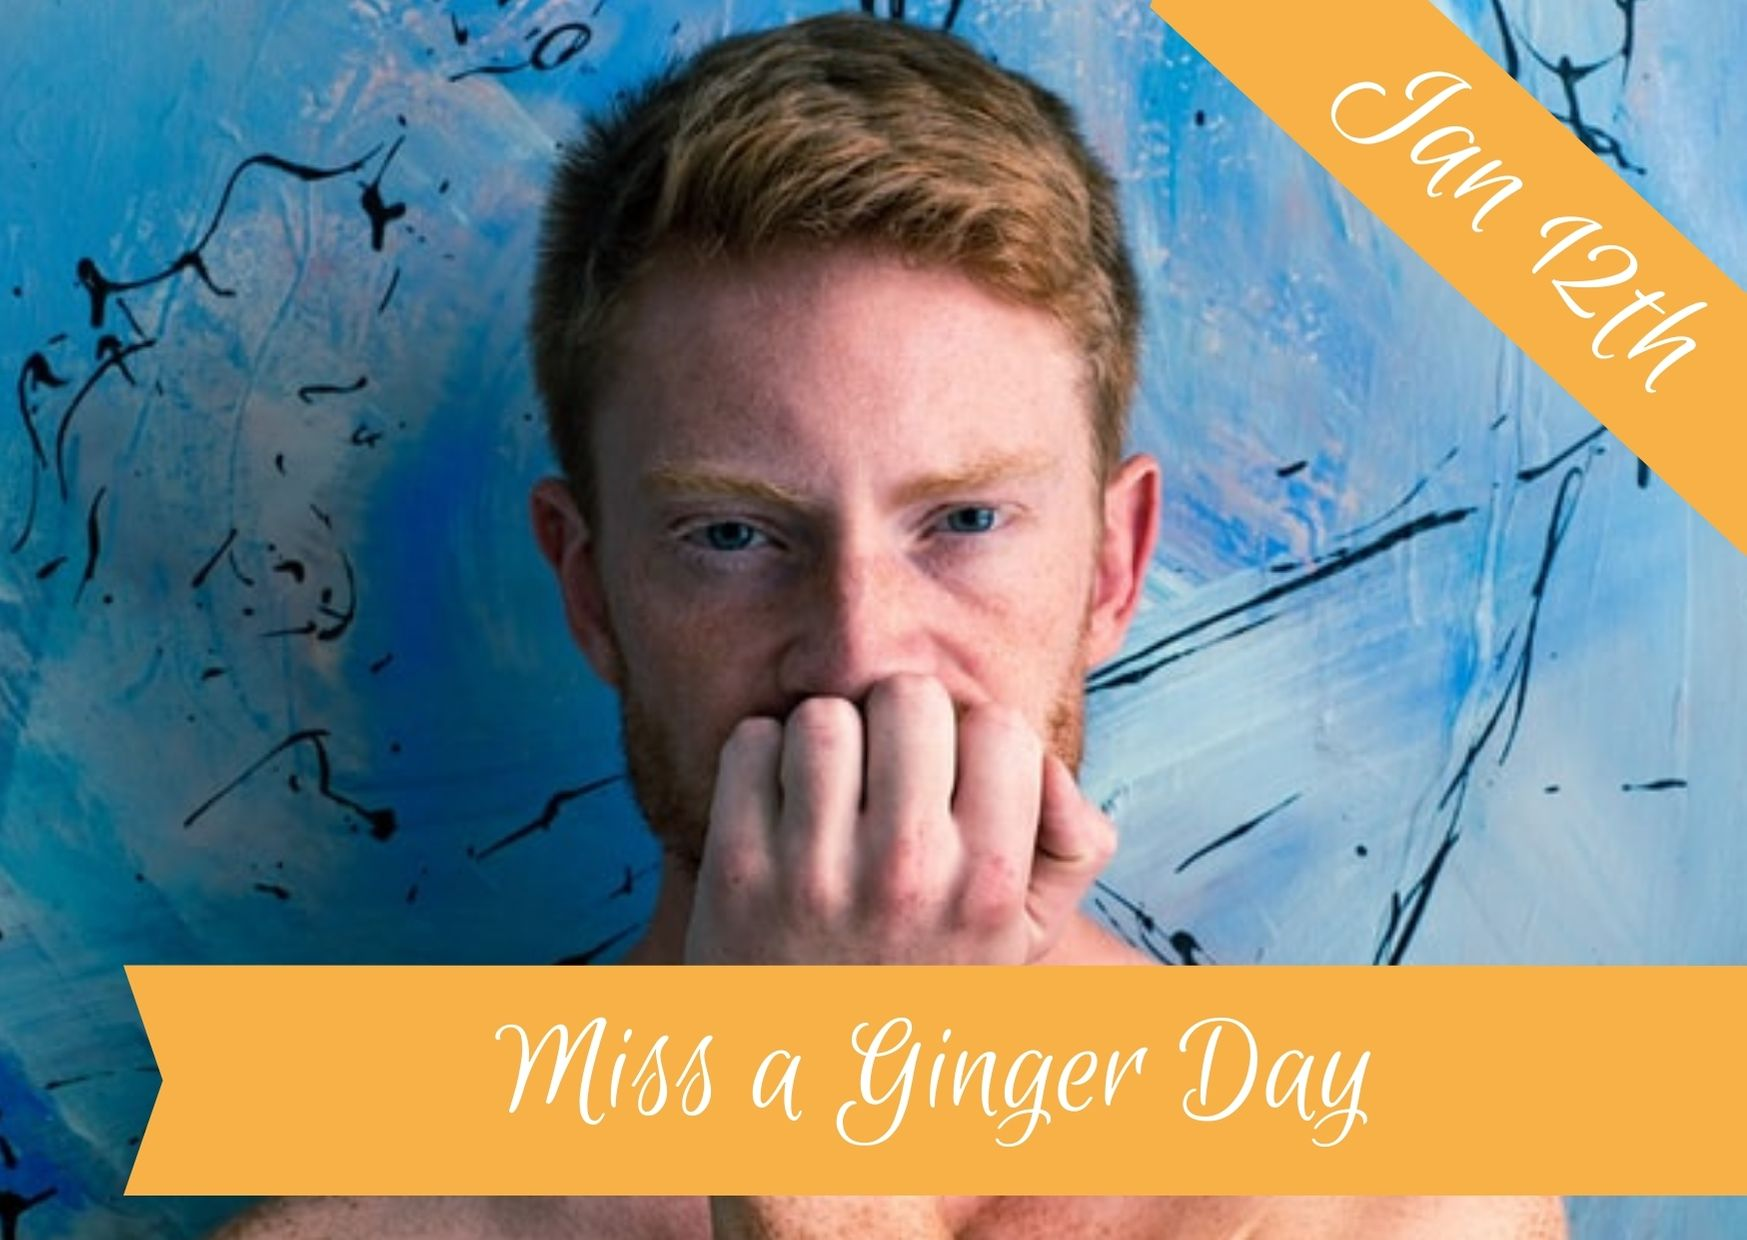 Miss a Ginger